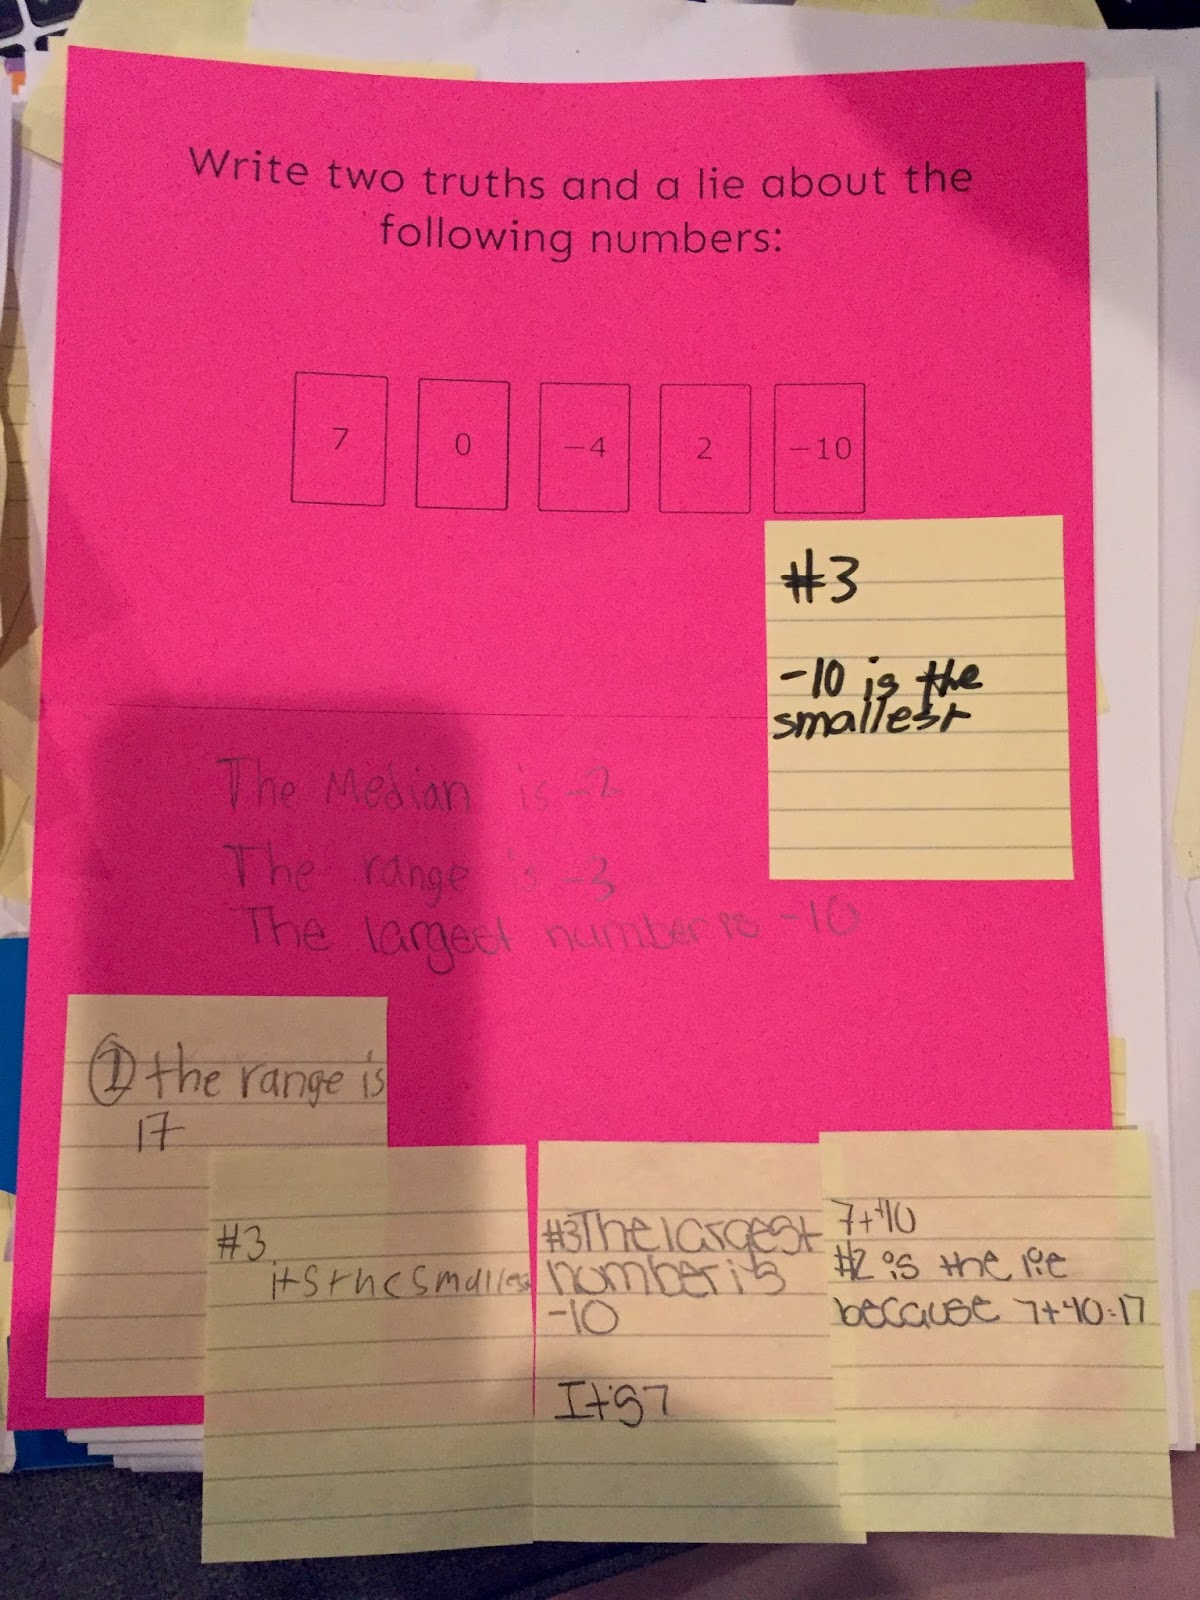 2 truths and a lie essay Two truths and a lie invite students to write on a slip of paper weekly tribes august 2016: 2 by 10 classroom management weekly tribes december 2016.